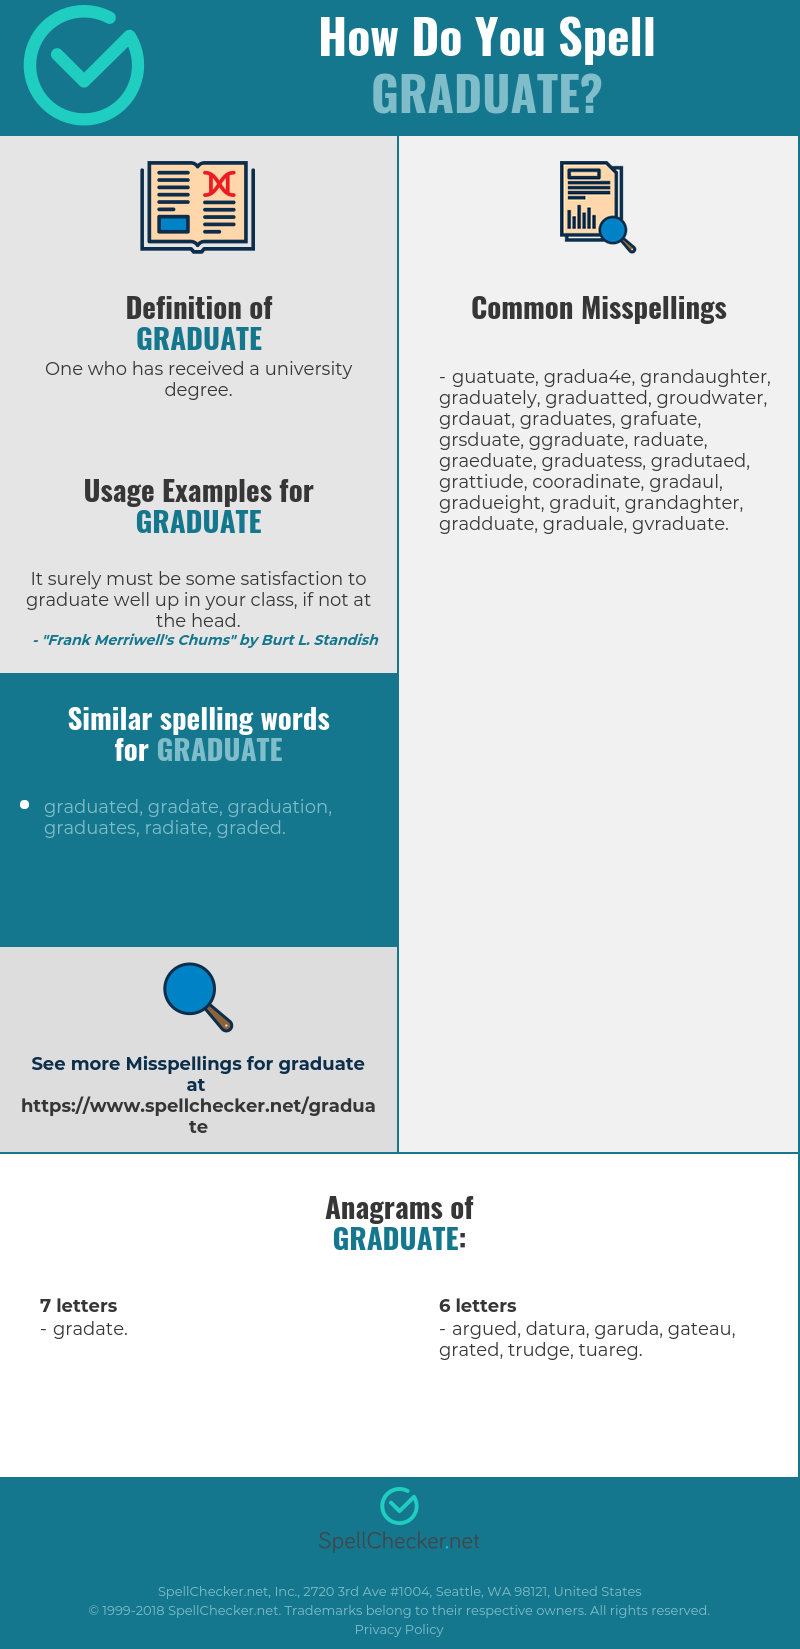 possessives - Use master thesis or master's thesis - English Language Learners Stack Exchange